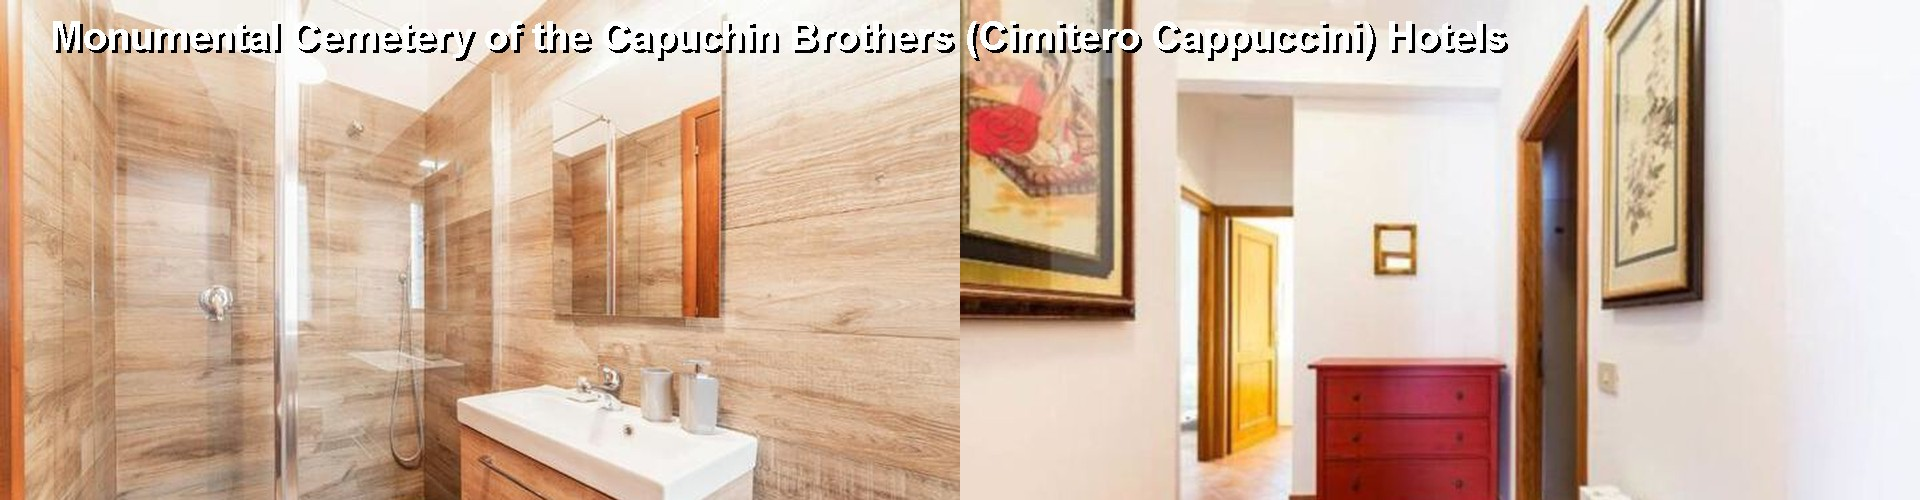 5 Best Hotels near Monumental Cemetery of the Capuchin Brothers (Cimitero Cappuccini)